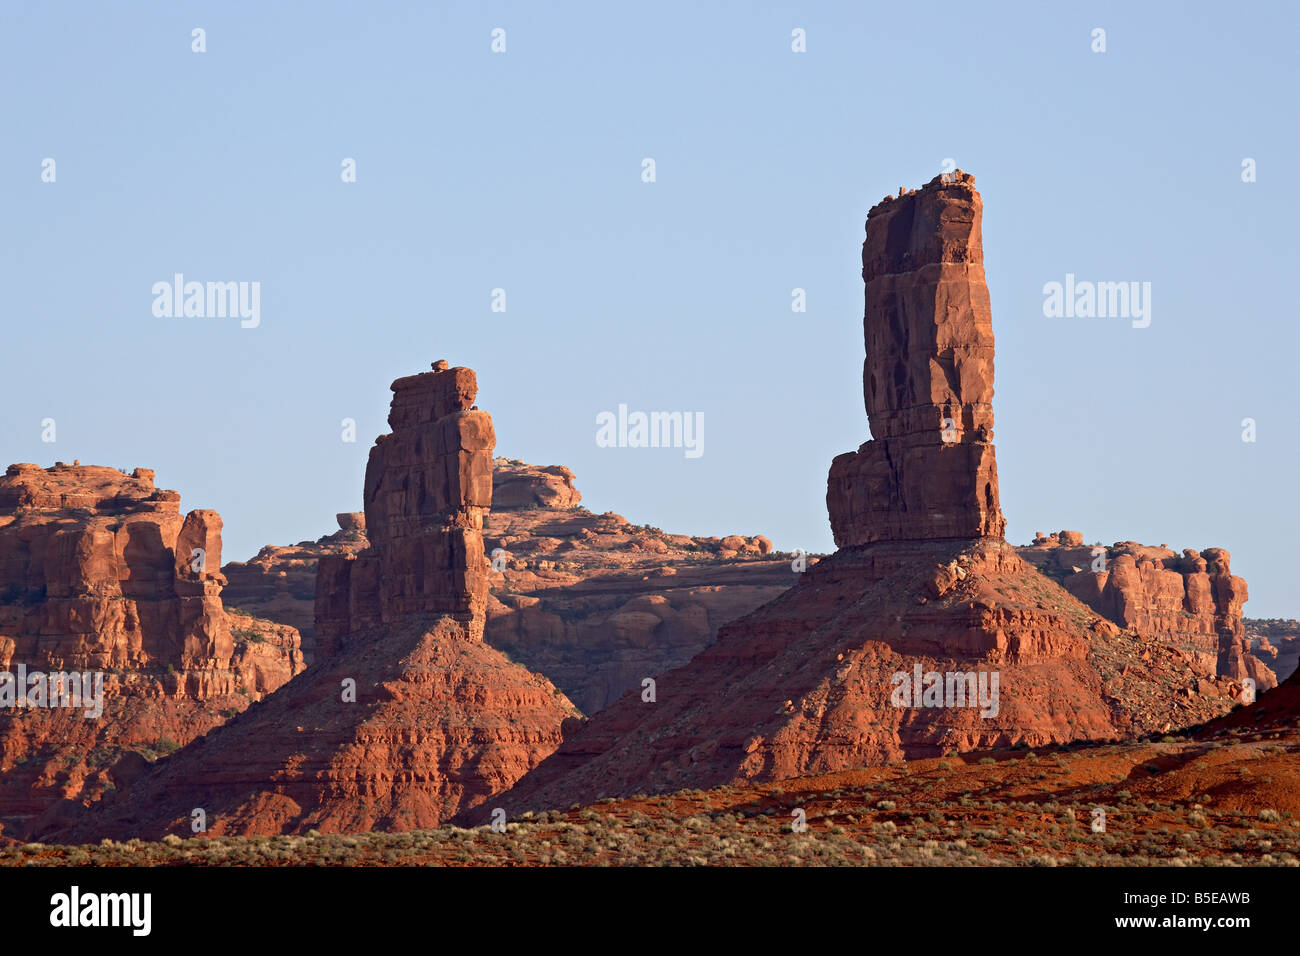 Red rock formation at sunrise, Valley of the Gods, Utah, USA, North America - Stock Image